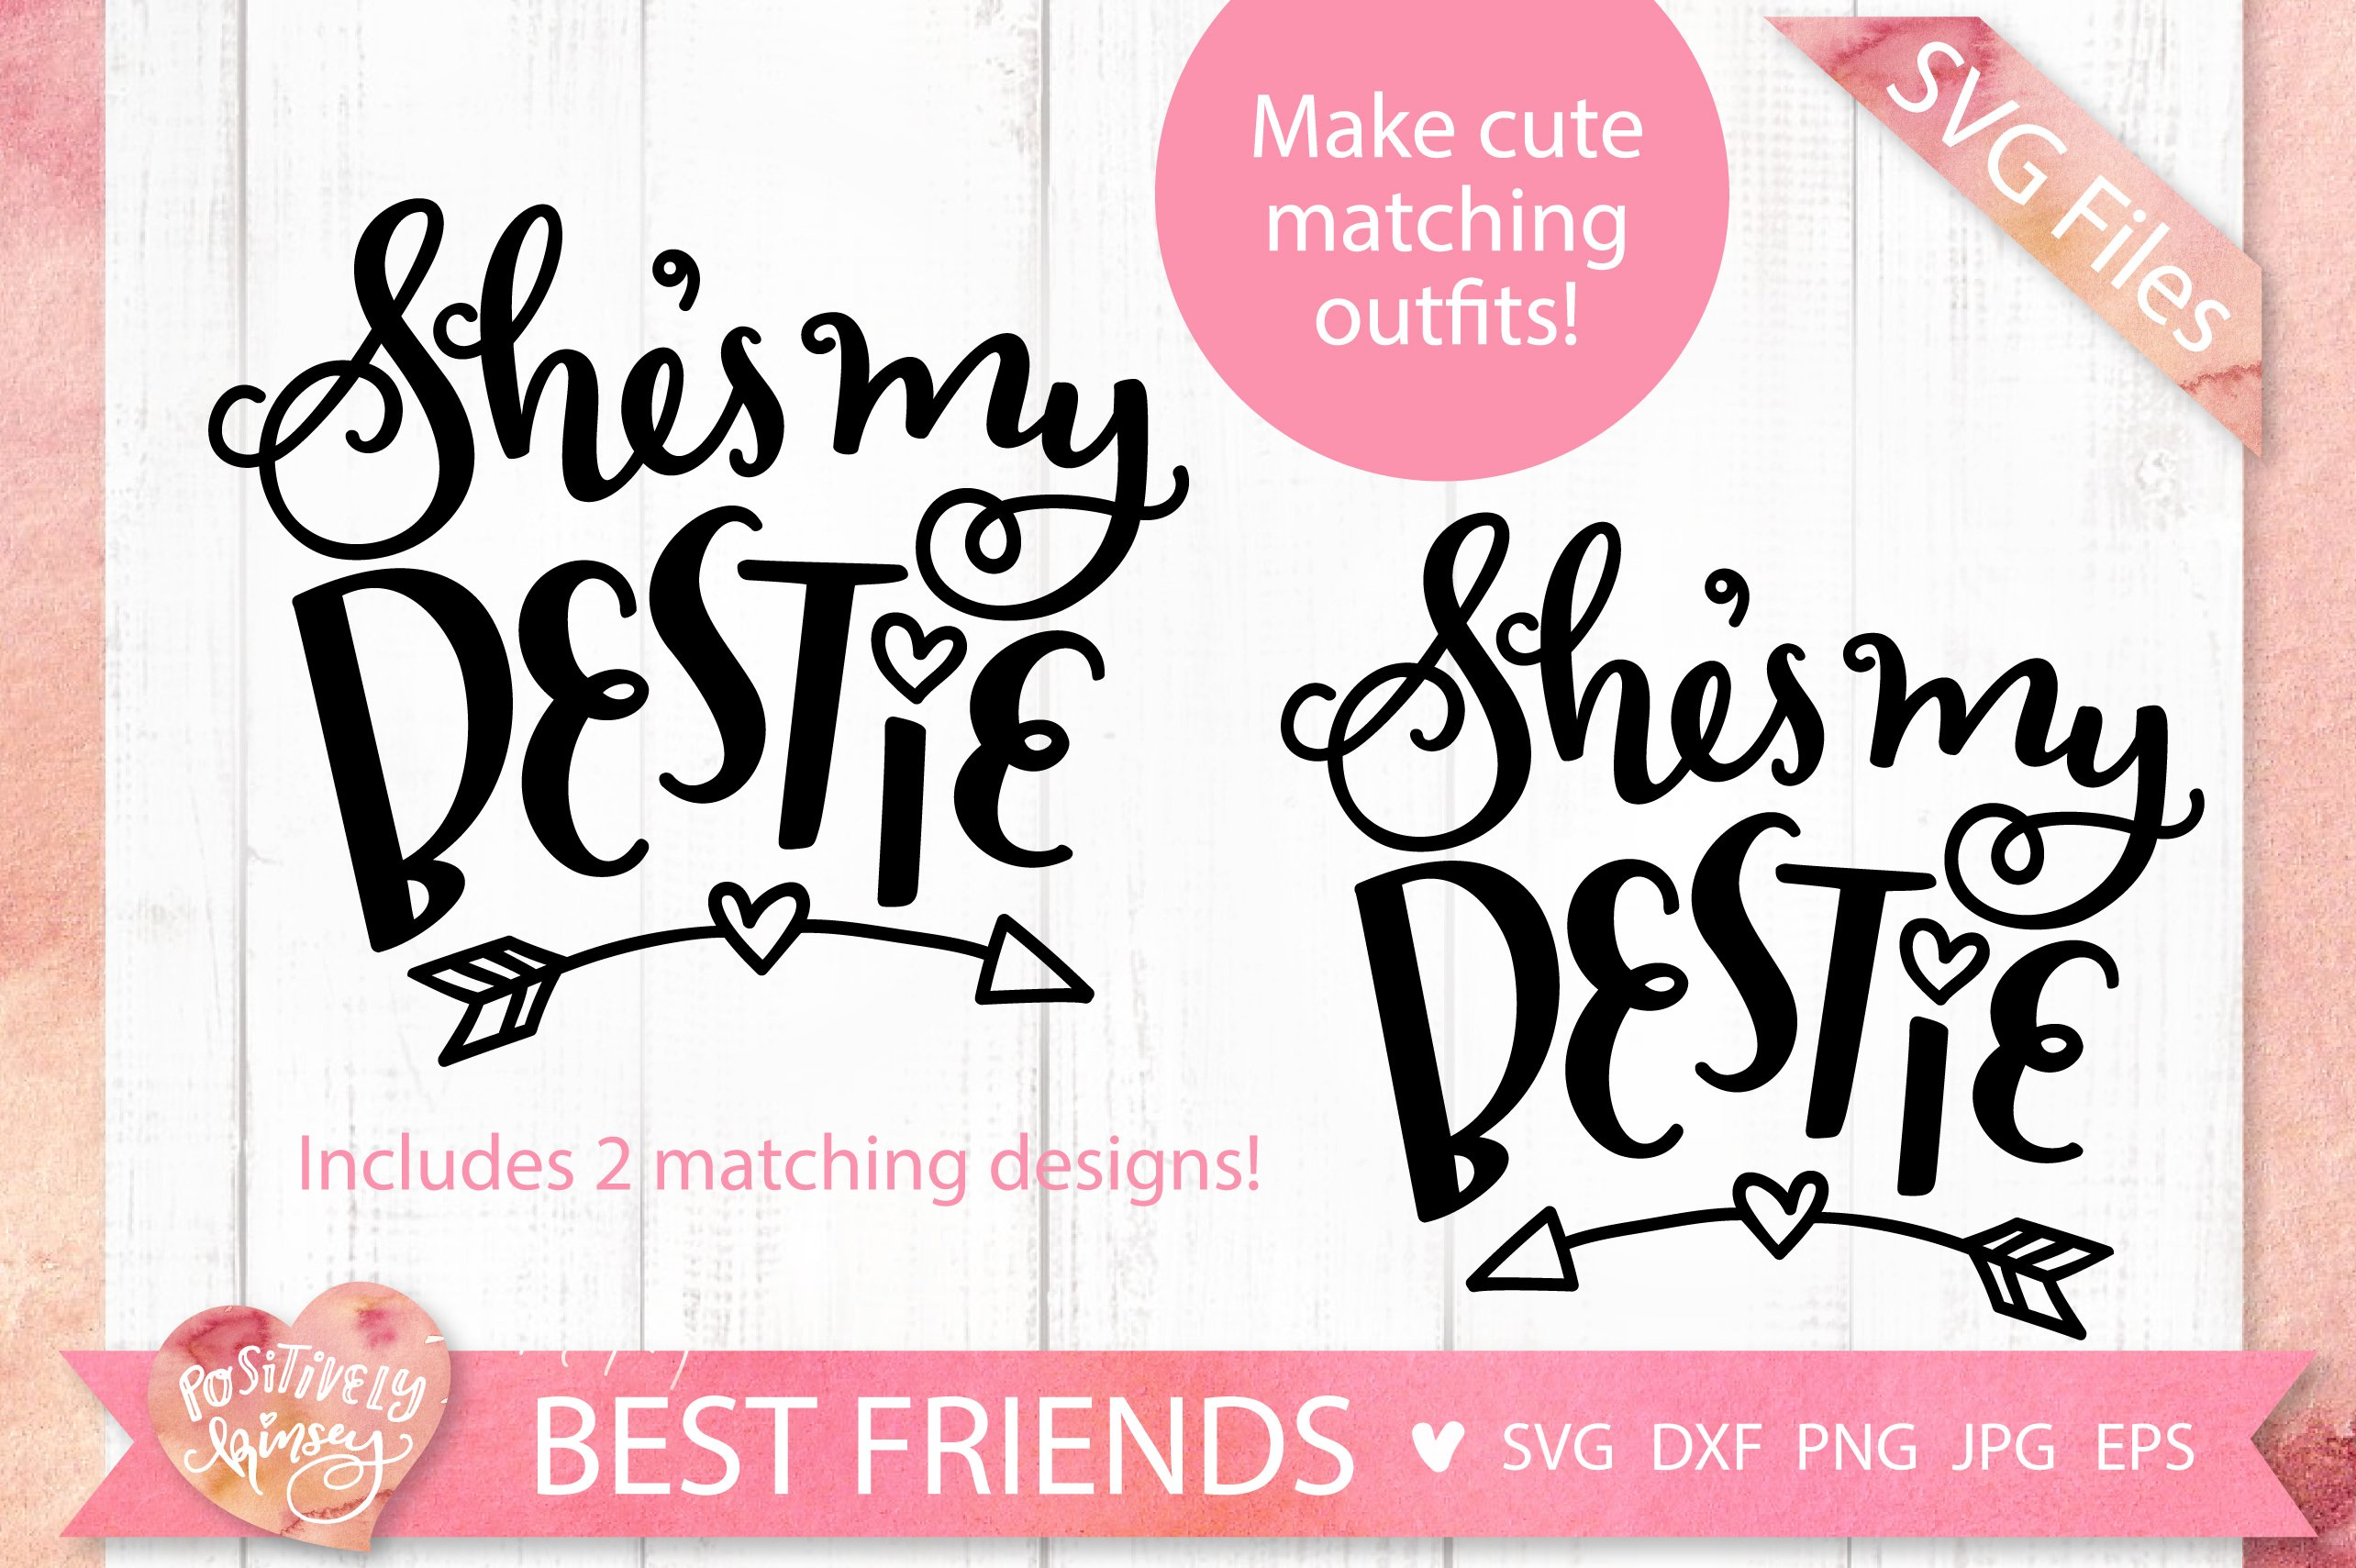 Best Friends Svg Dxf Png Eps Jpg She S My Bestie Svg Files 318083 Svgs Design Bundles